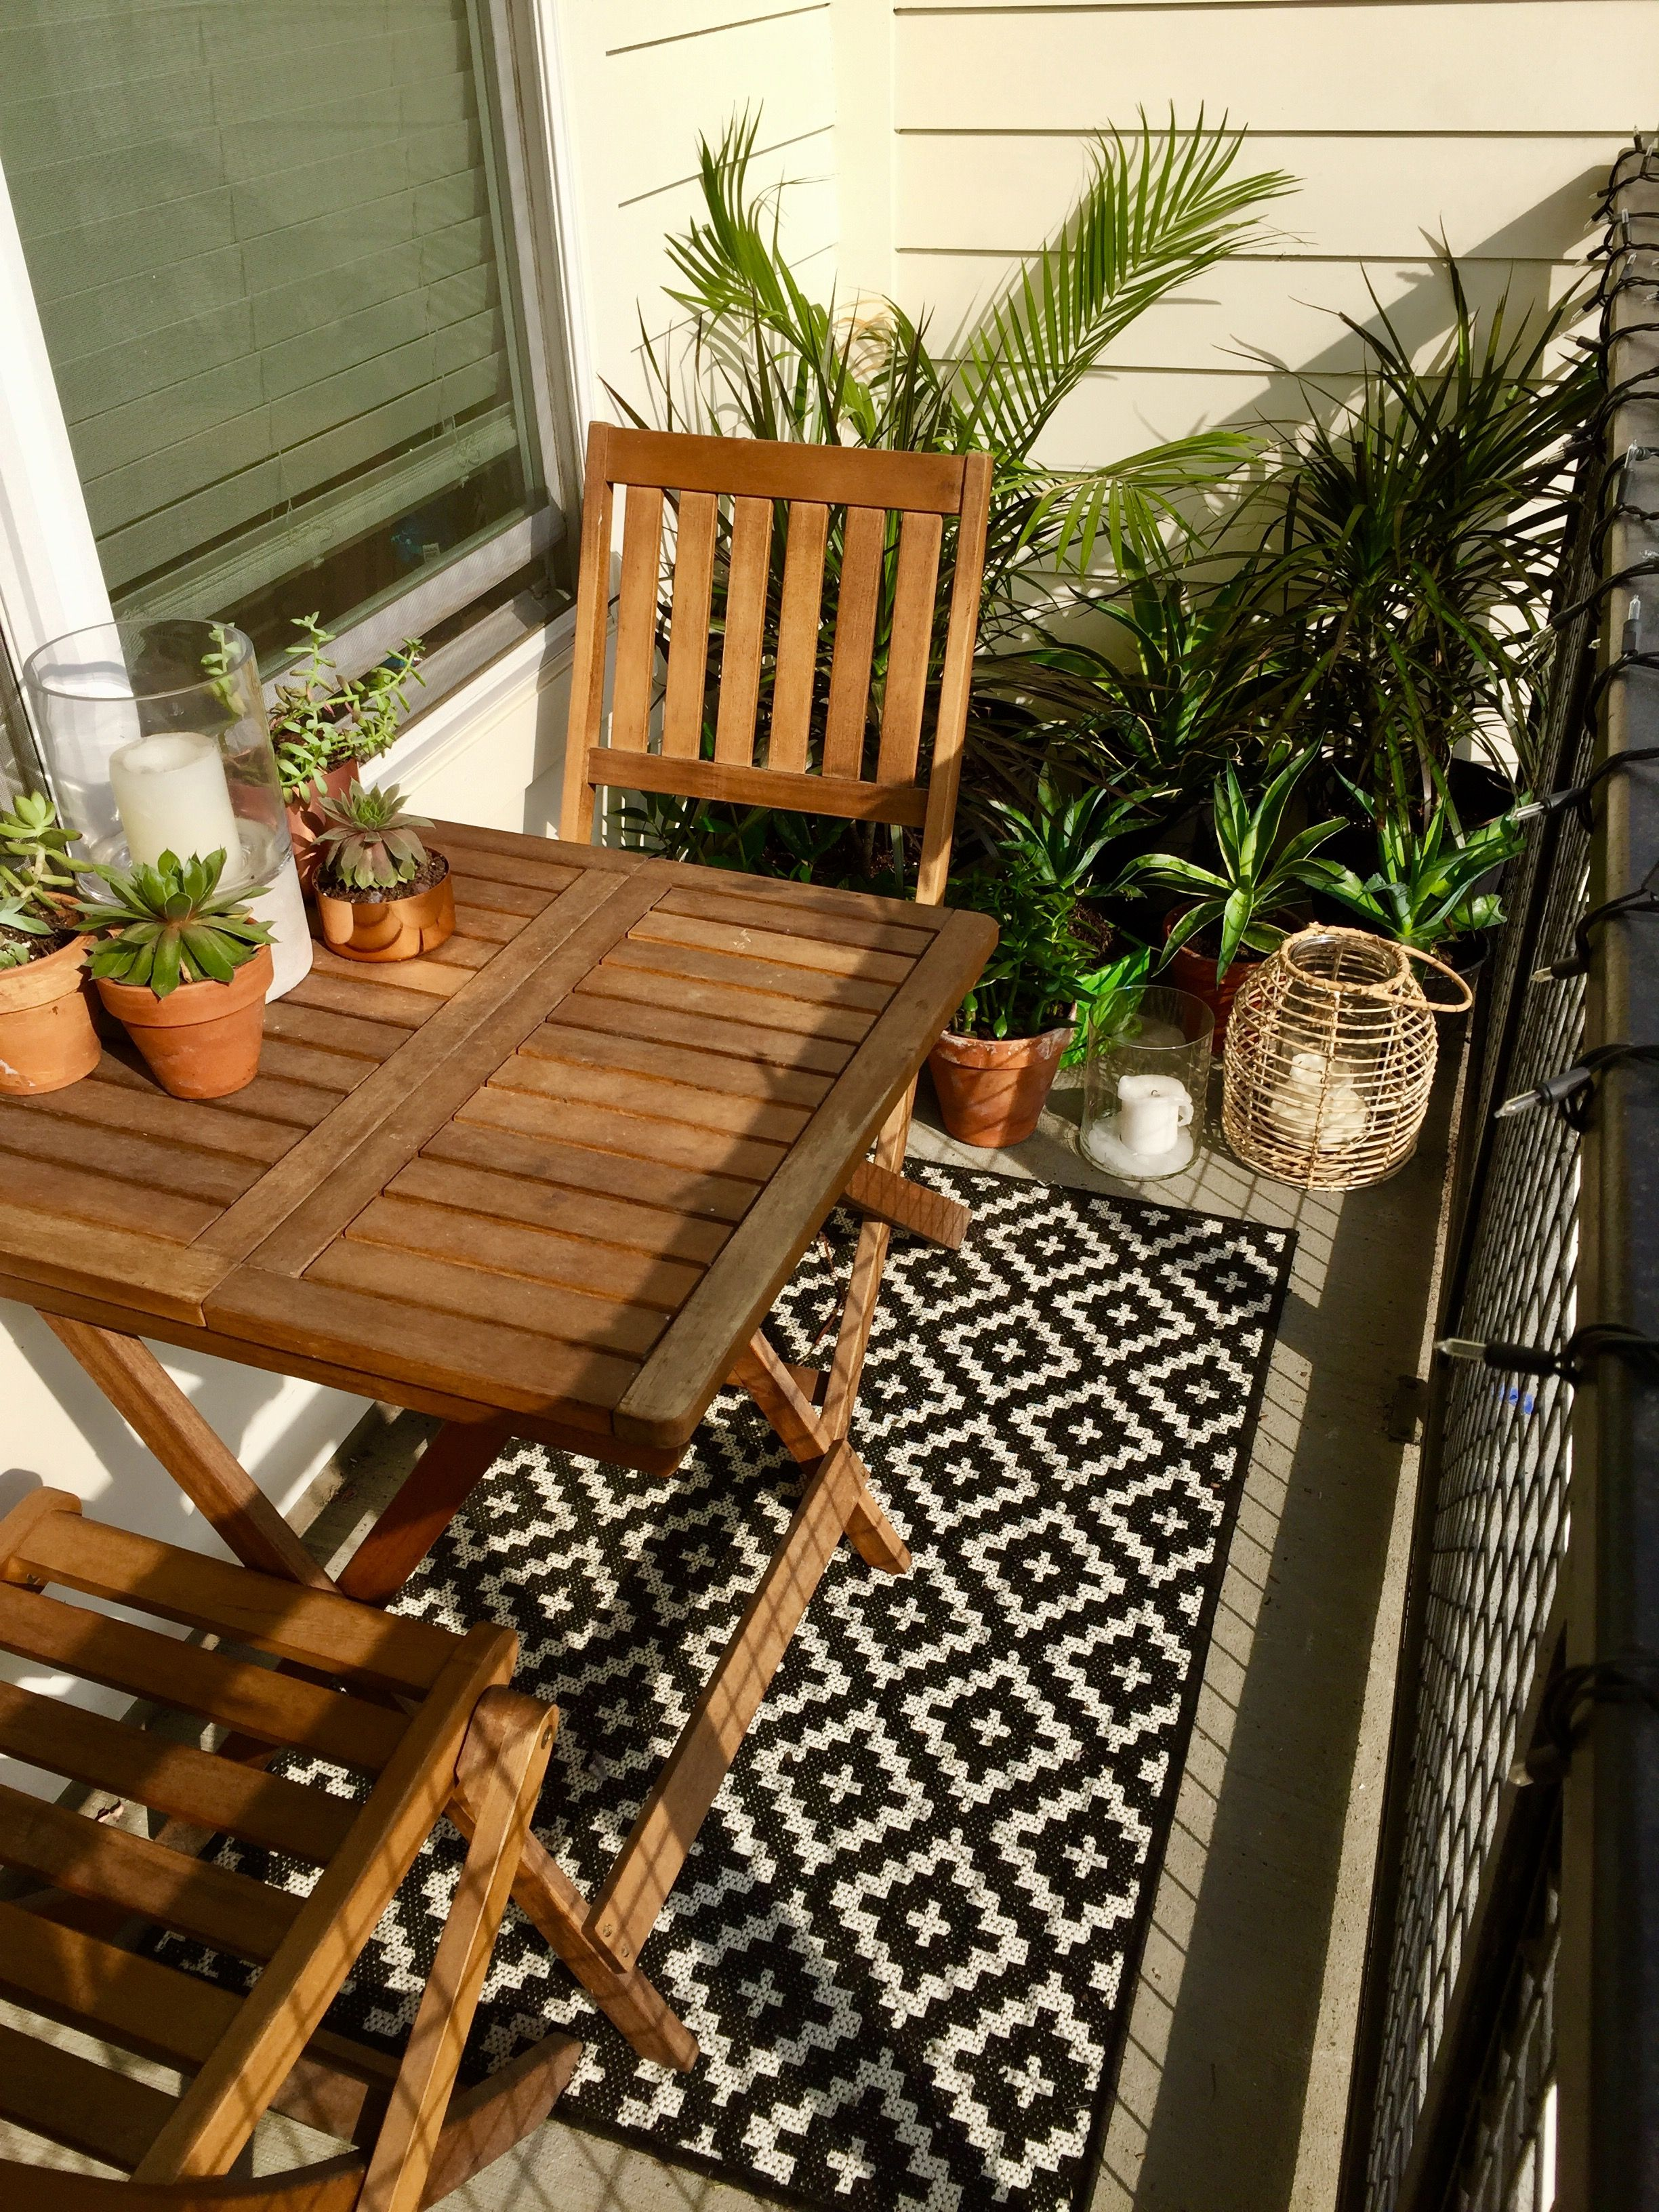 8 summer small patio ideas for you small balcony decor How can i decorate my house